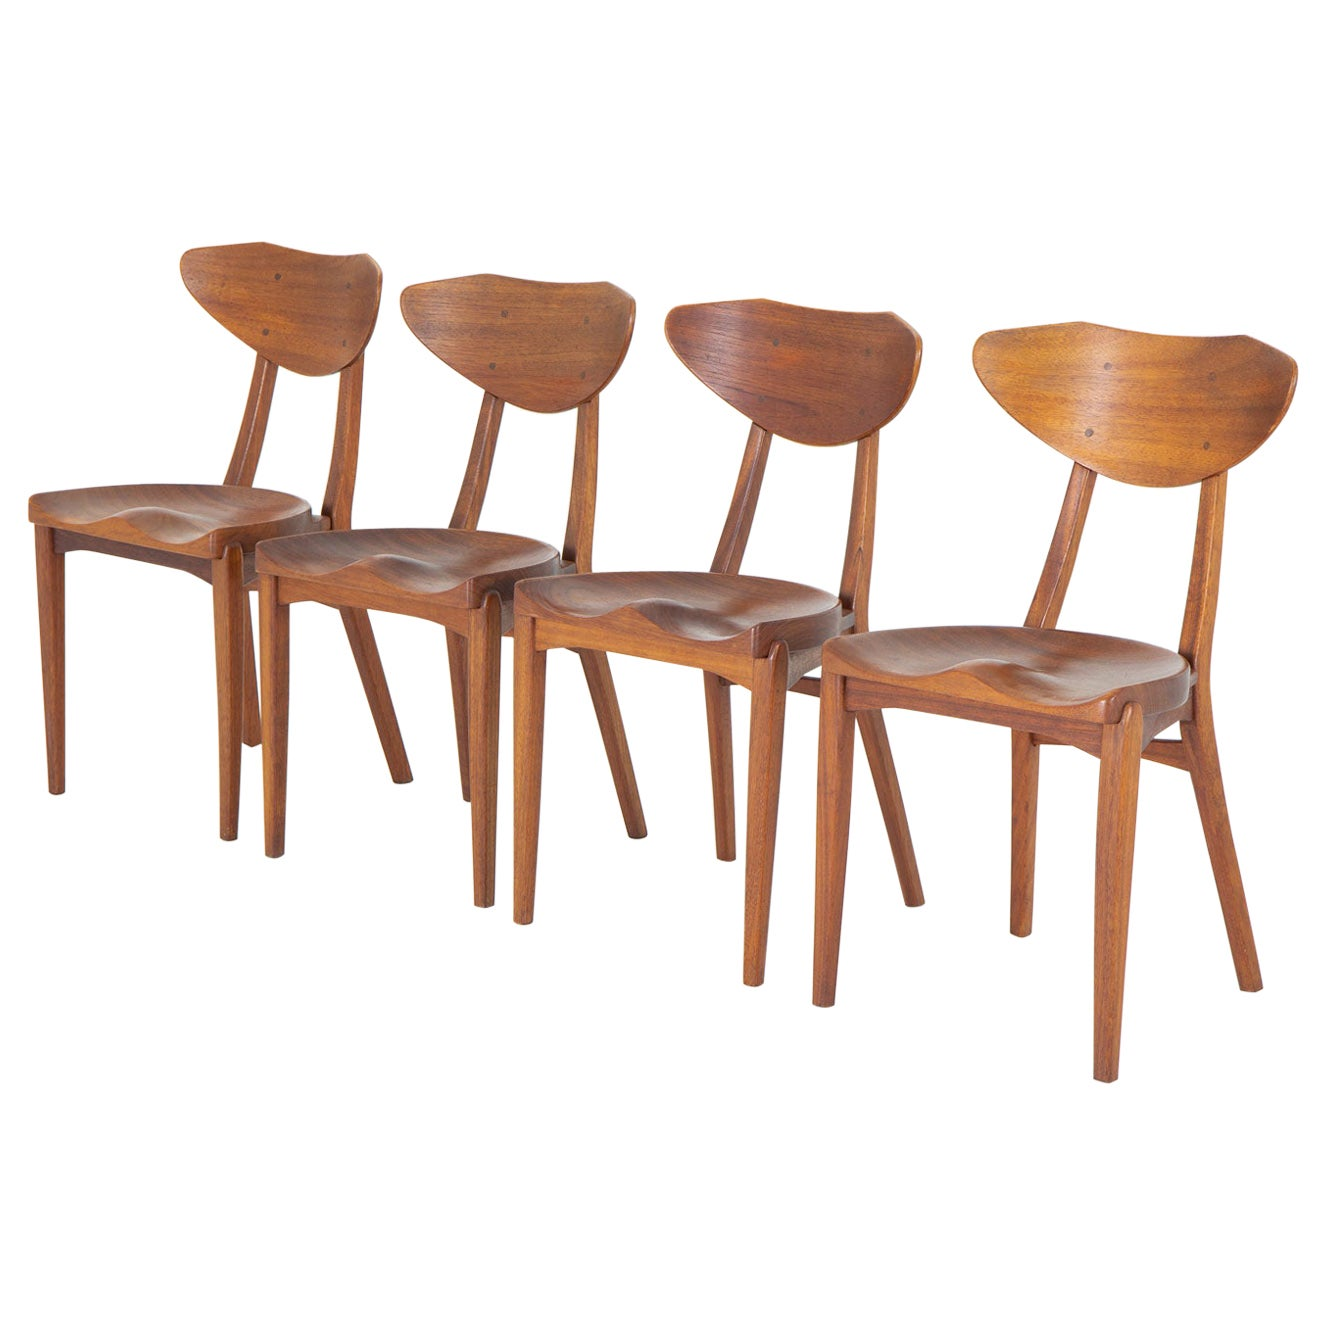 Set of Four Dining Chairs by Richard Jensen and Kjaerulff Rasmussen